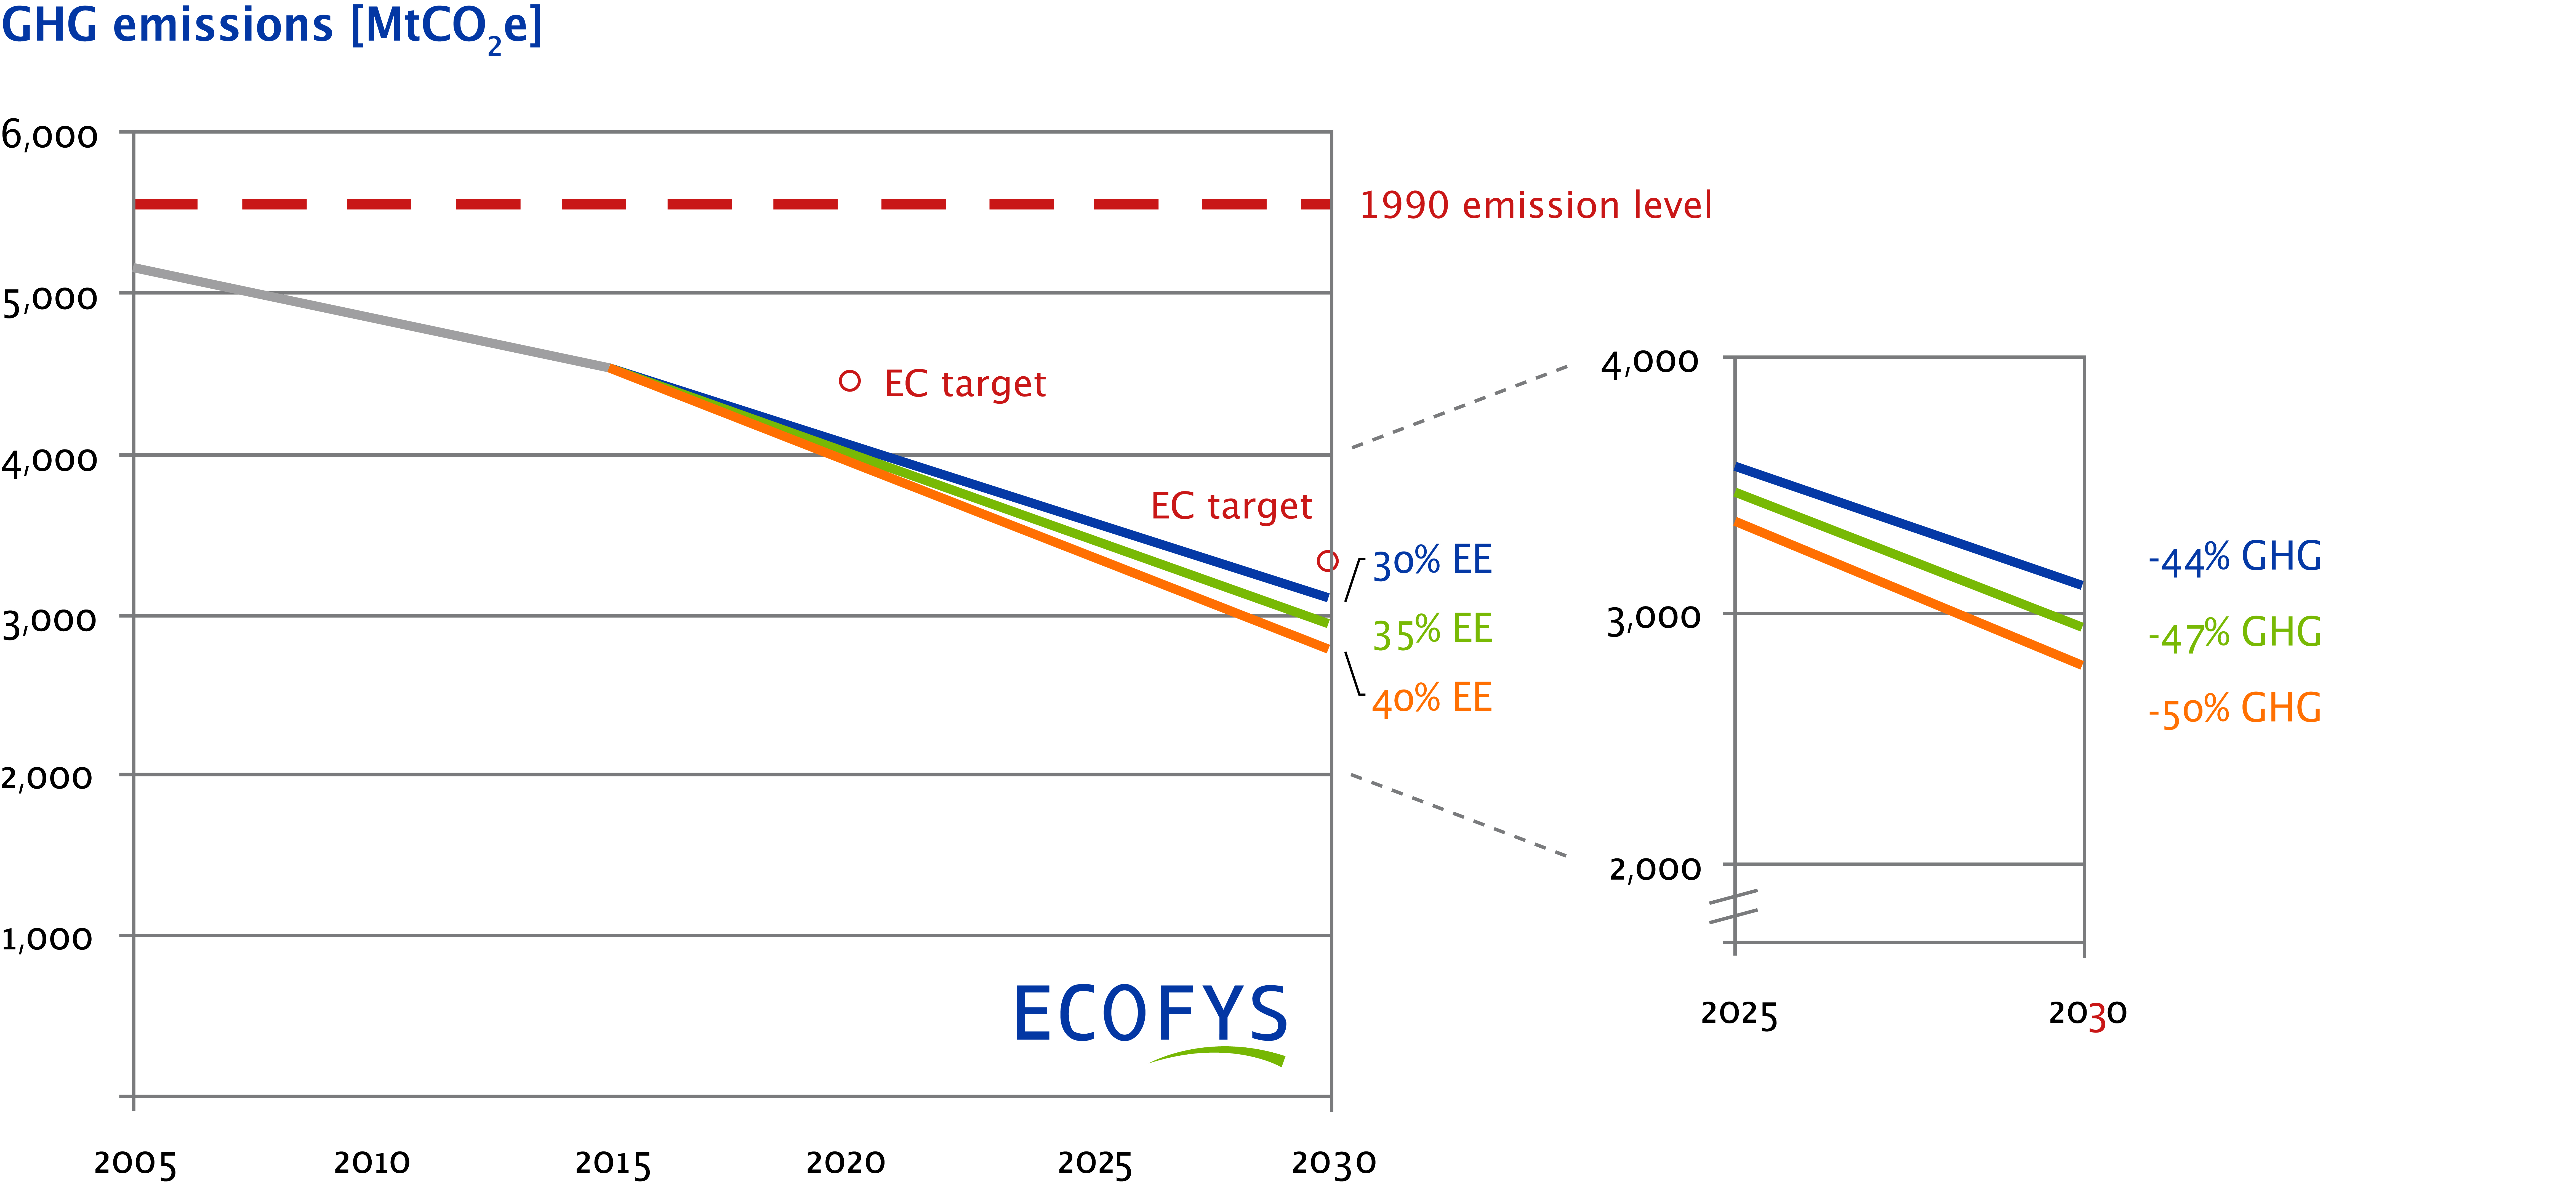 Emissions reduction pathways with a 30% renewable energy target and 30%, 35% and 40% energy efficiency targets.